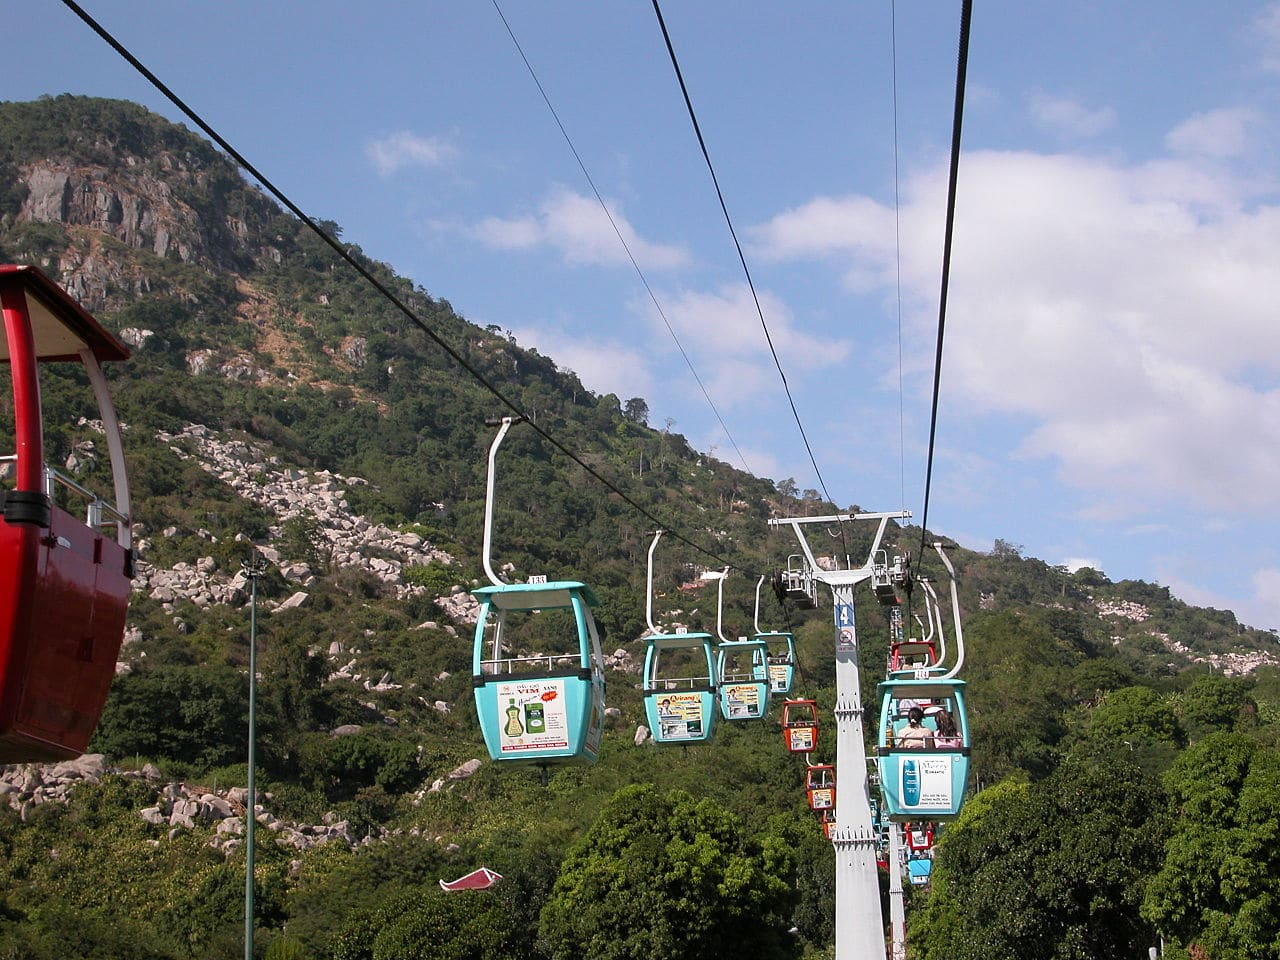 Cable Car on the Black Virgin Mountain in the Tây Ninh Province Vietnam